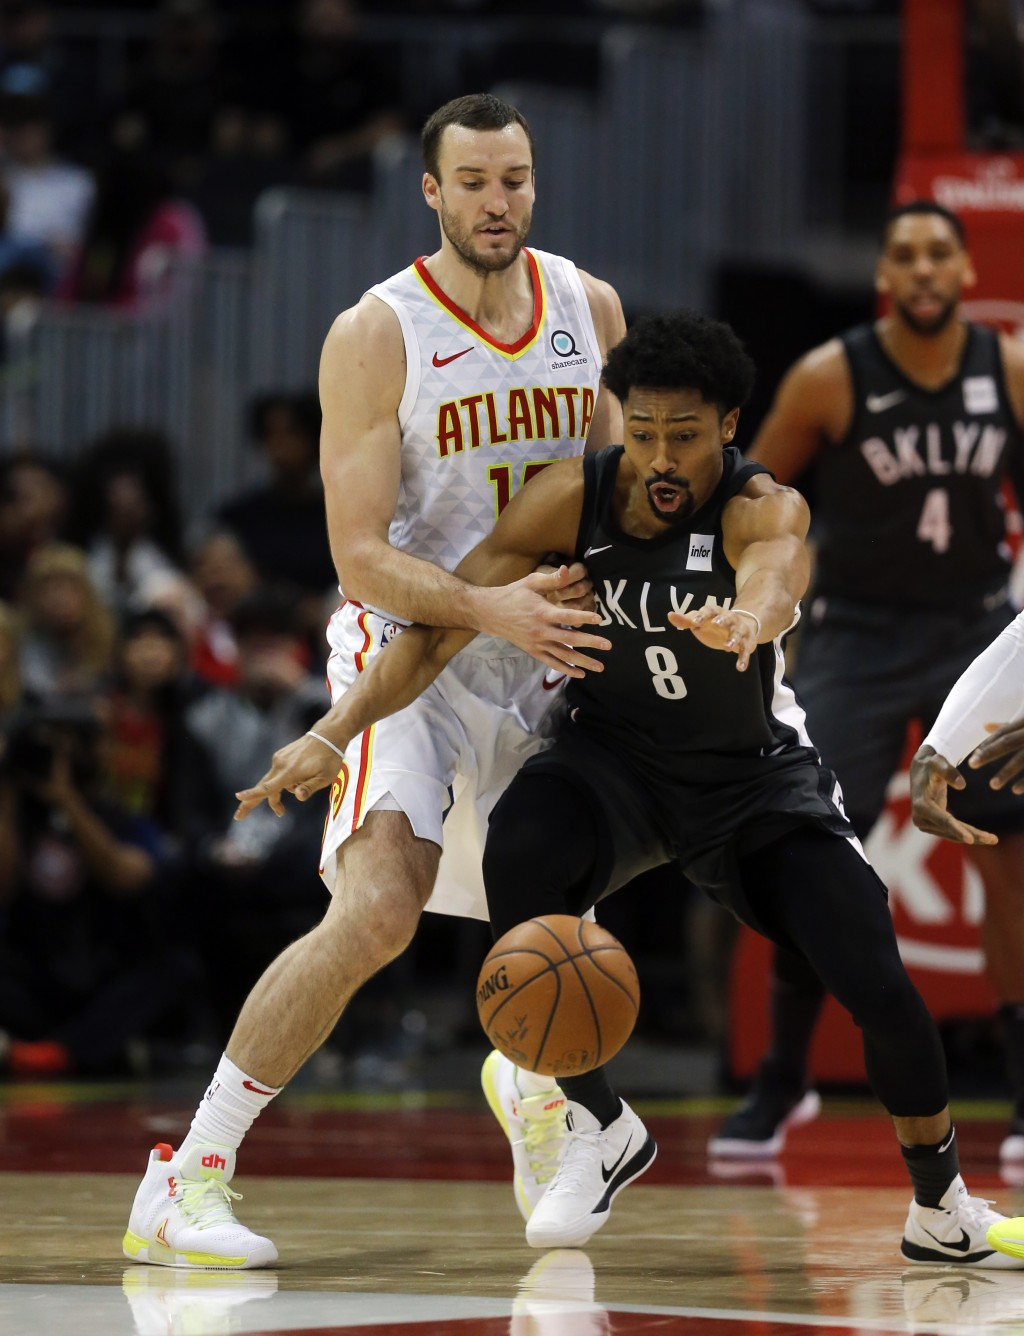 Brooklyn Nets guard Spencer Dinwiddie (8) and Atlanta Hawks center Miles Plumlee (18) battle for the ball in the first half of an NBA basketball game